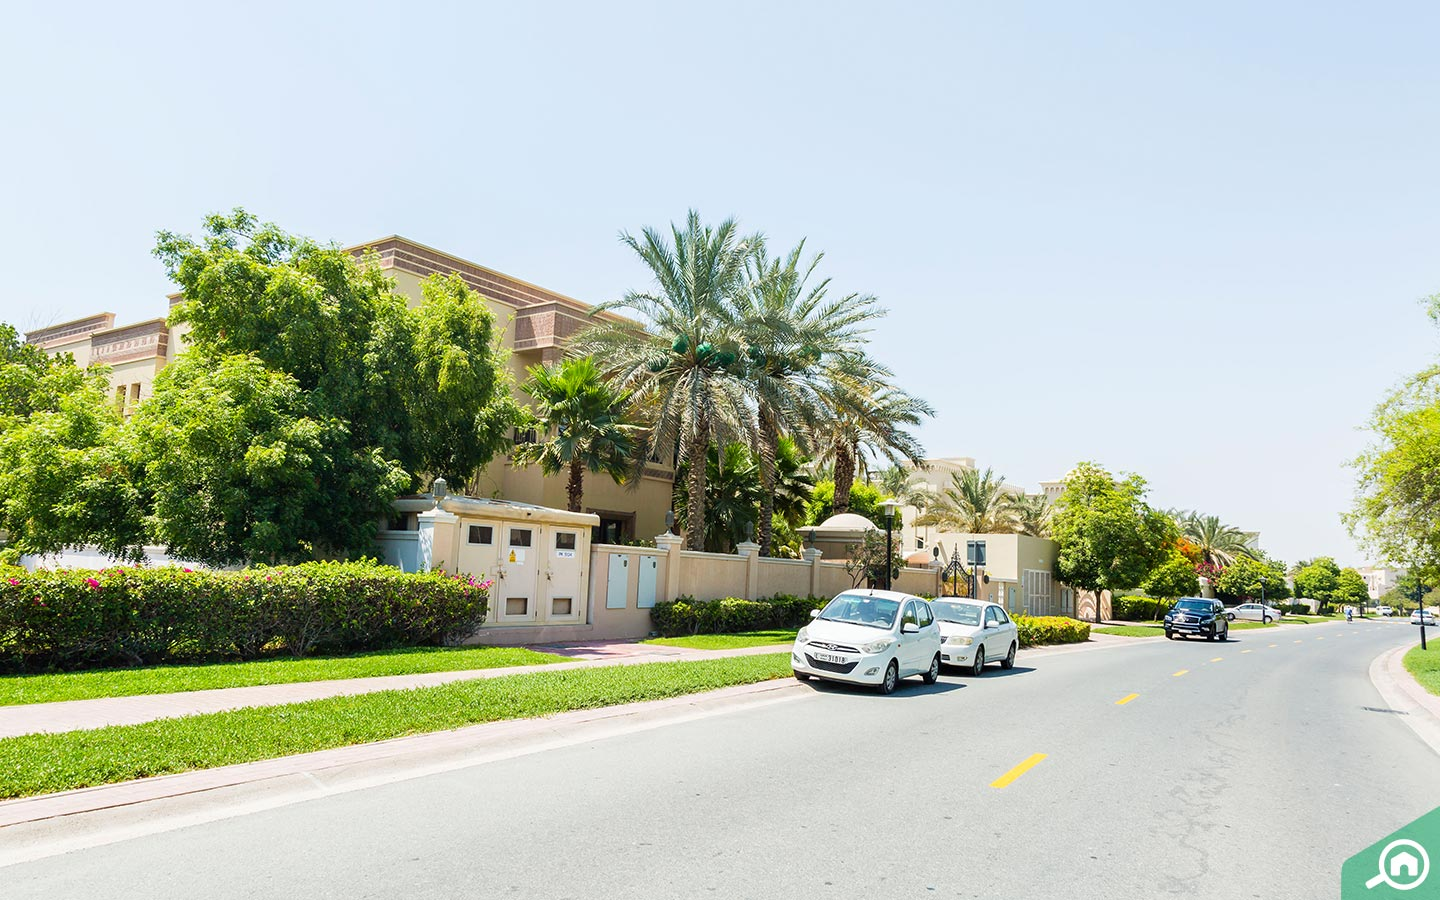 parking spaces in Emirates Hills